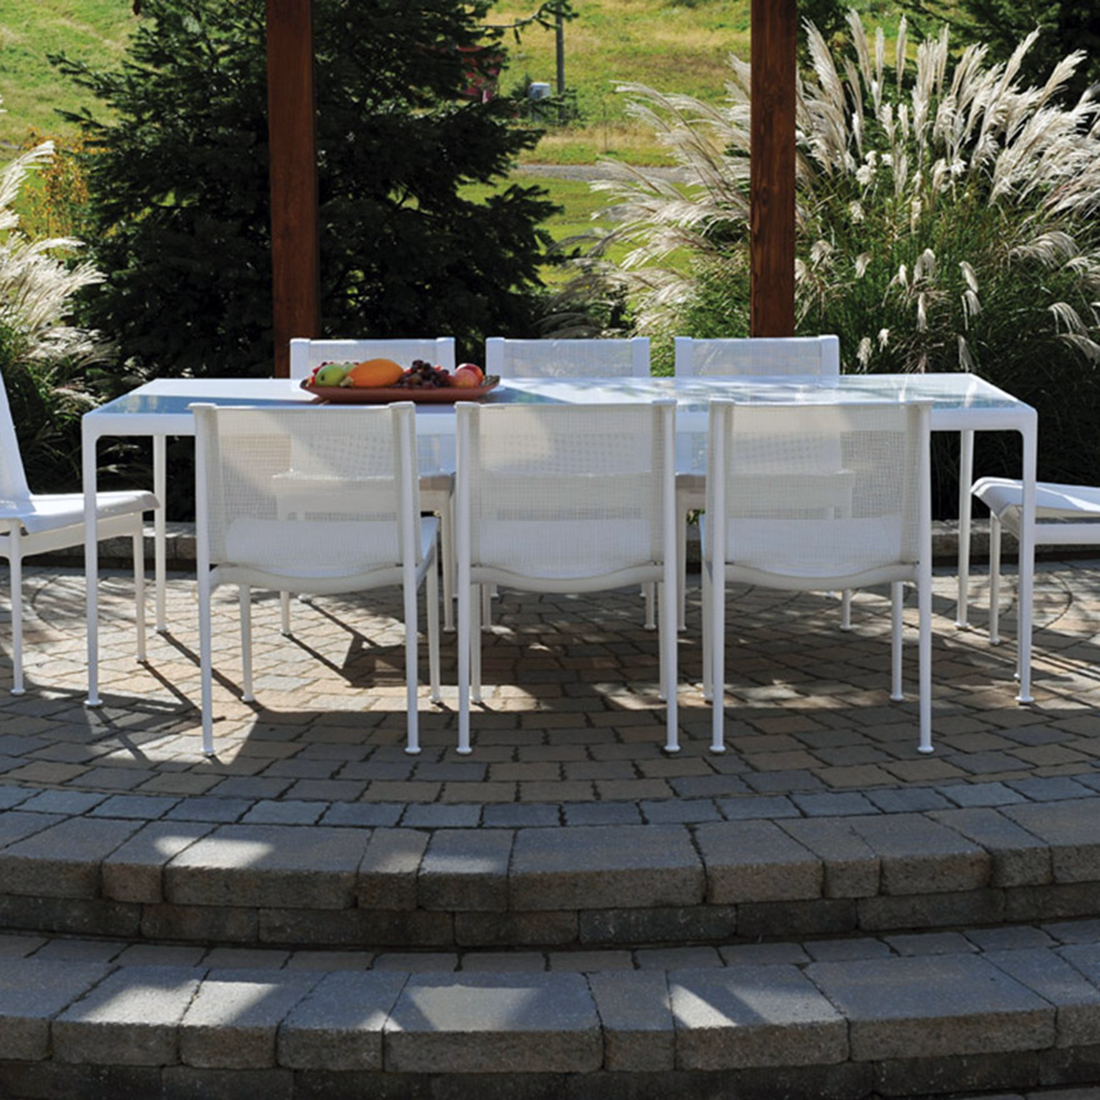 Designapplause 1966 Collection Outdoor Furniture